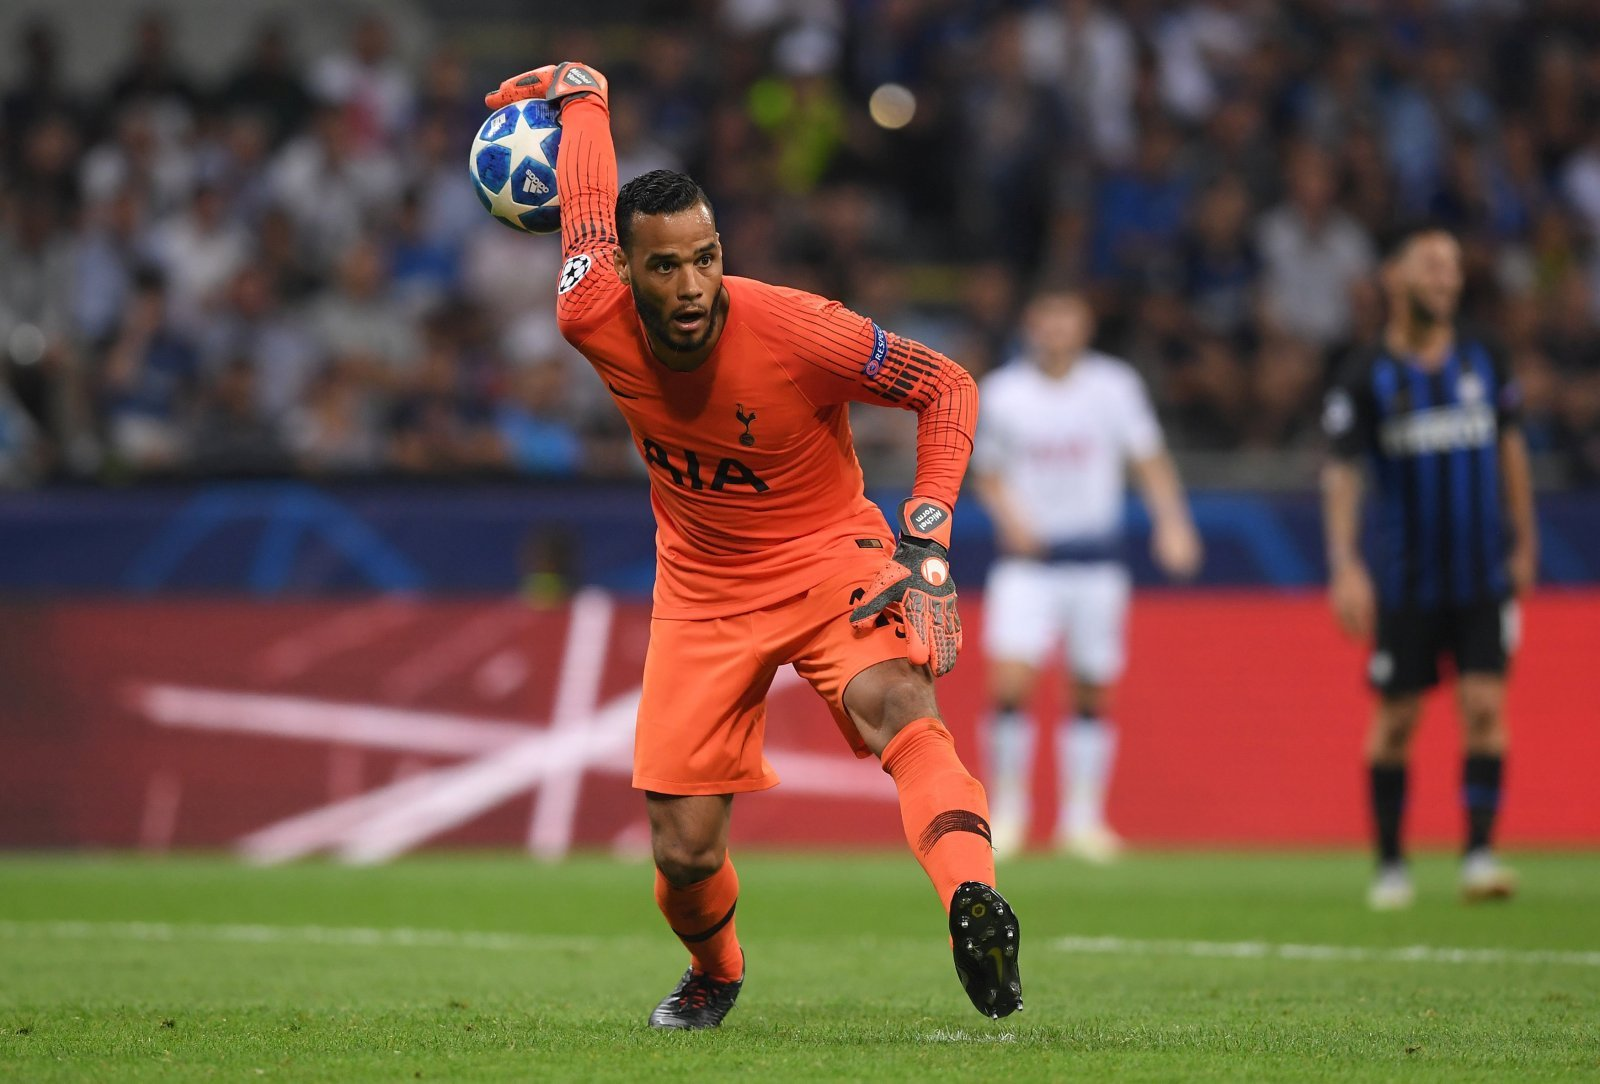 Transfers that ruined careers: Michel Vorm to Tottenham